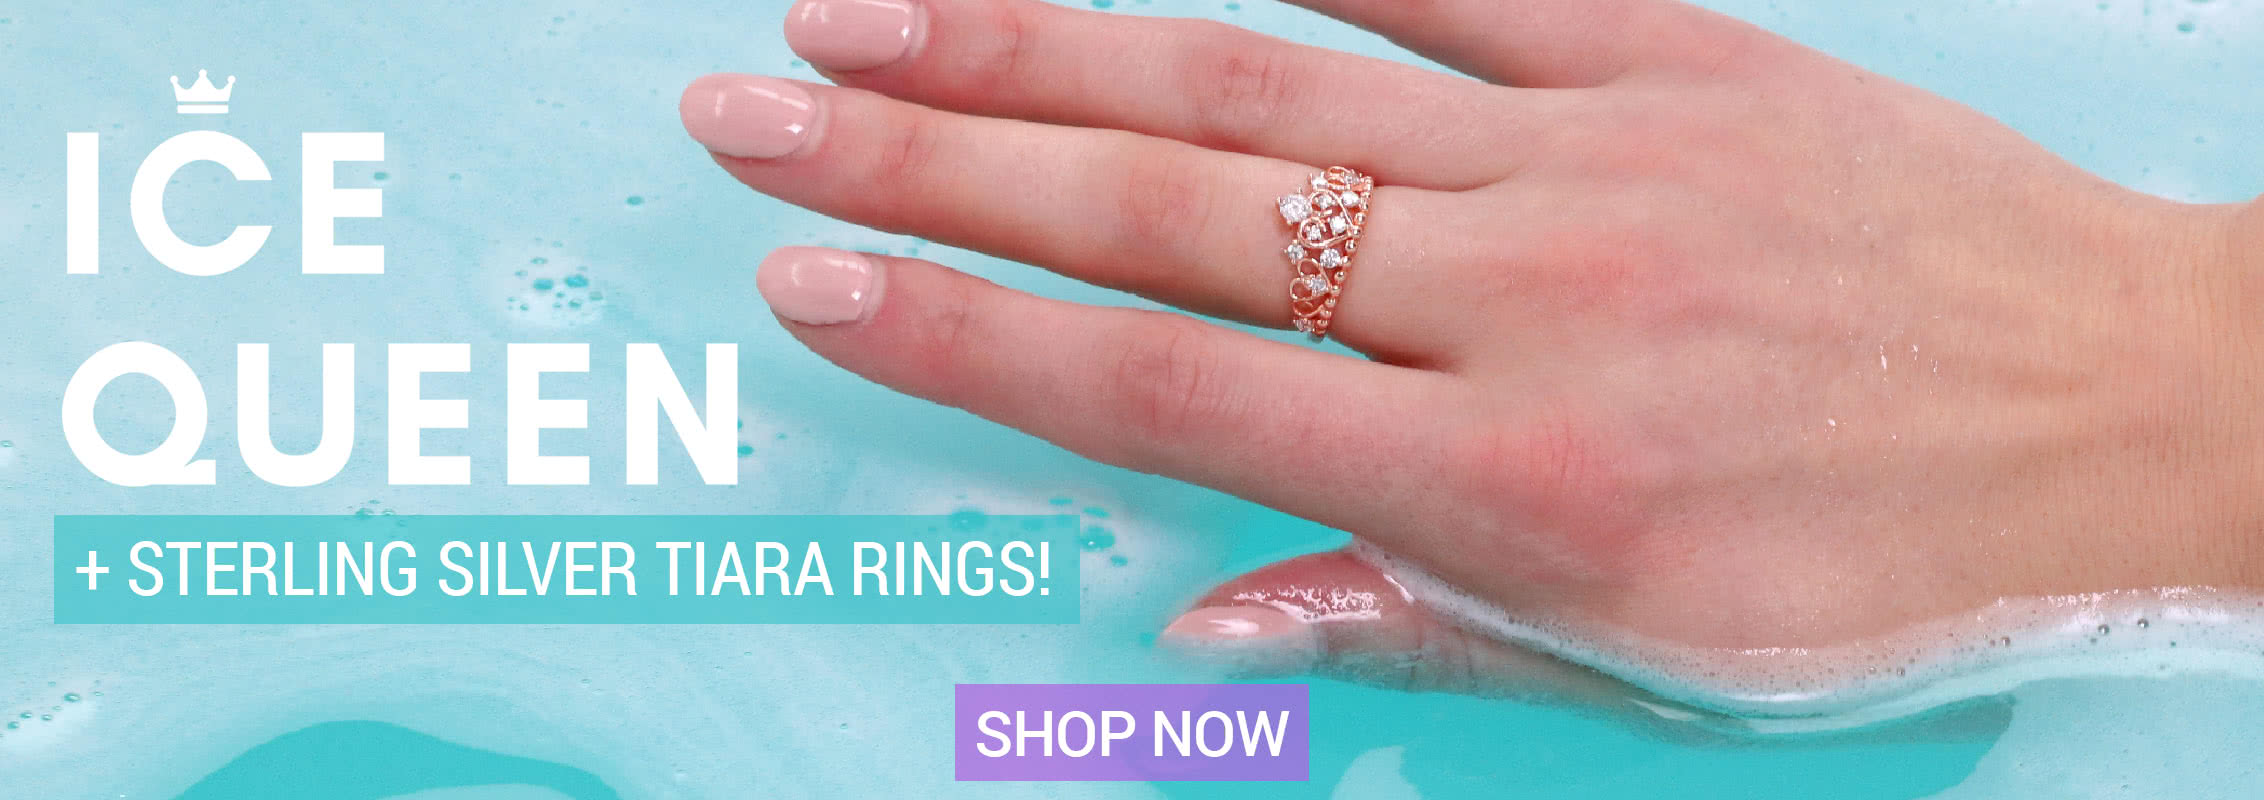 Ice Queen Sterling Silver Tiara Rings Bath Bomb